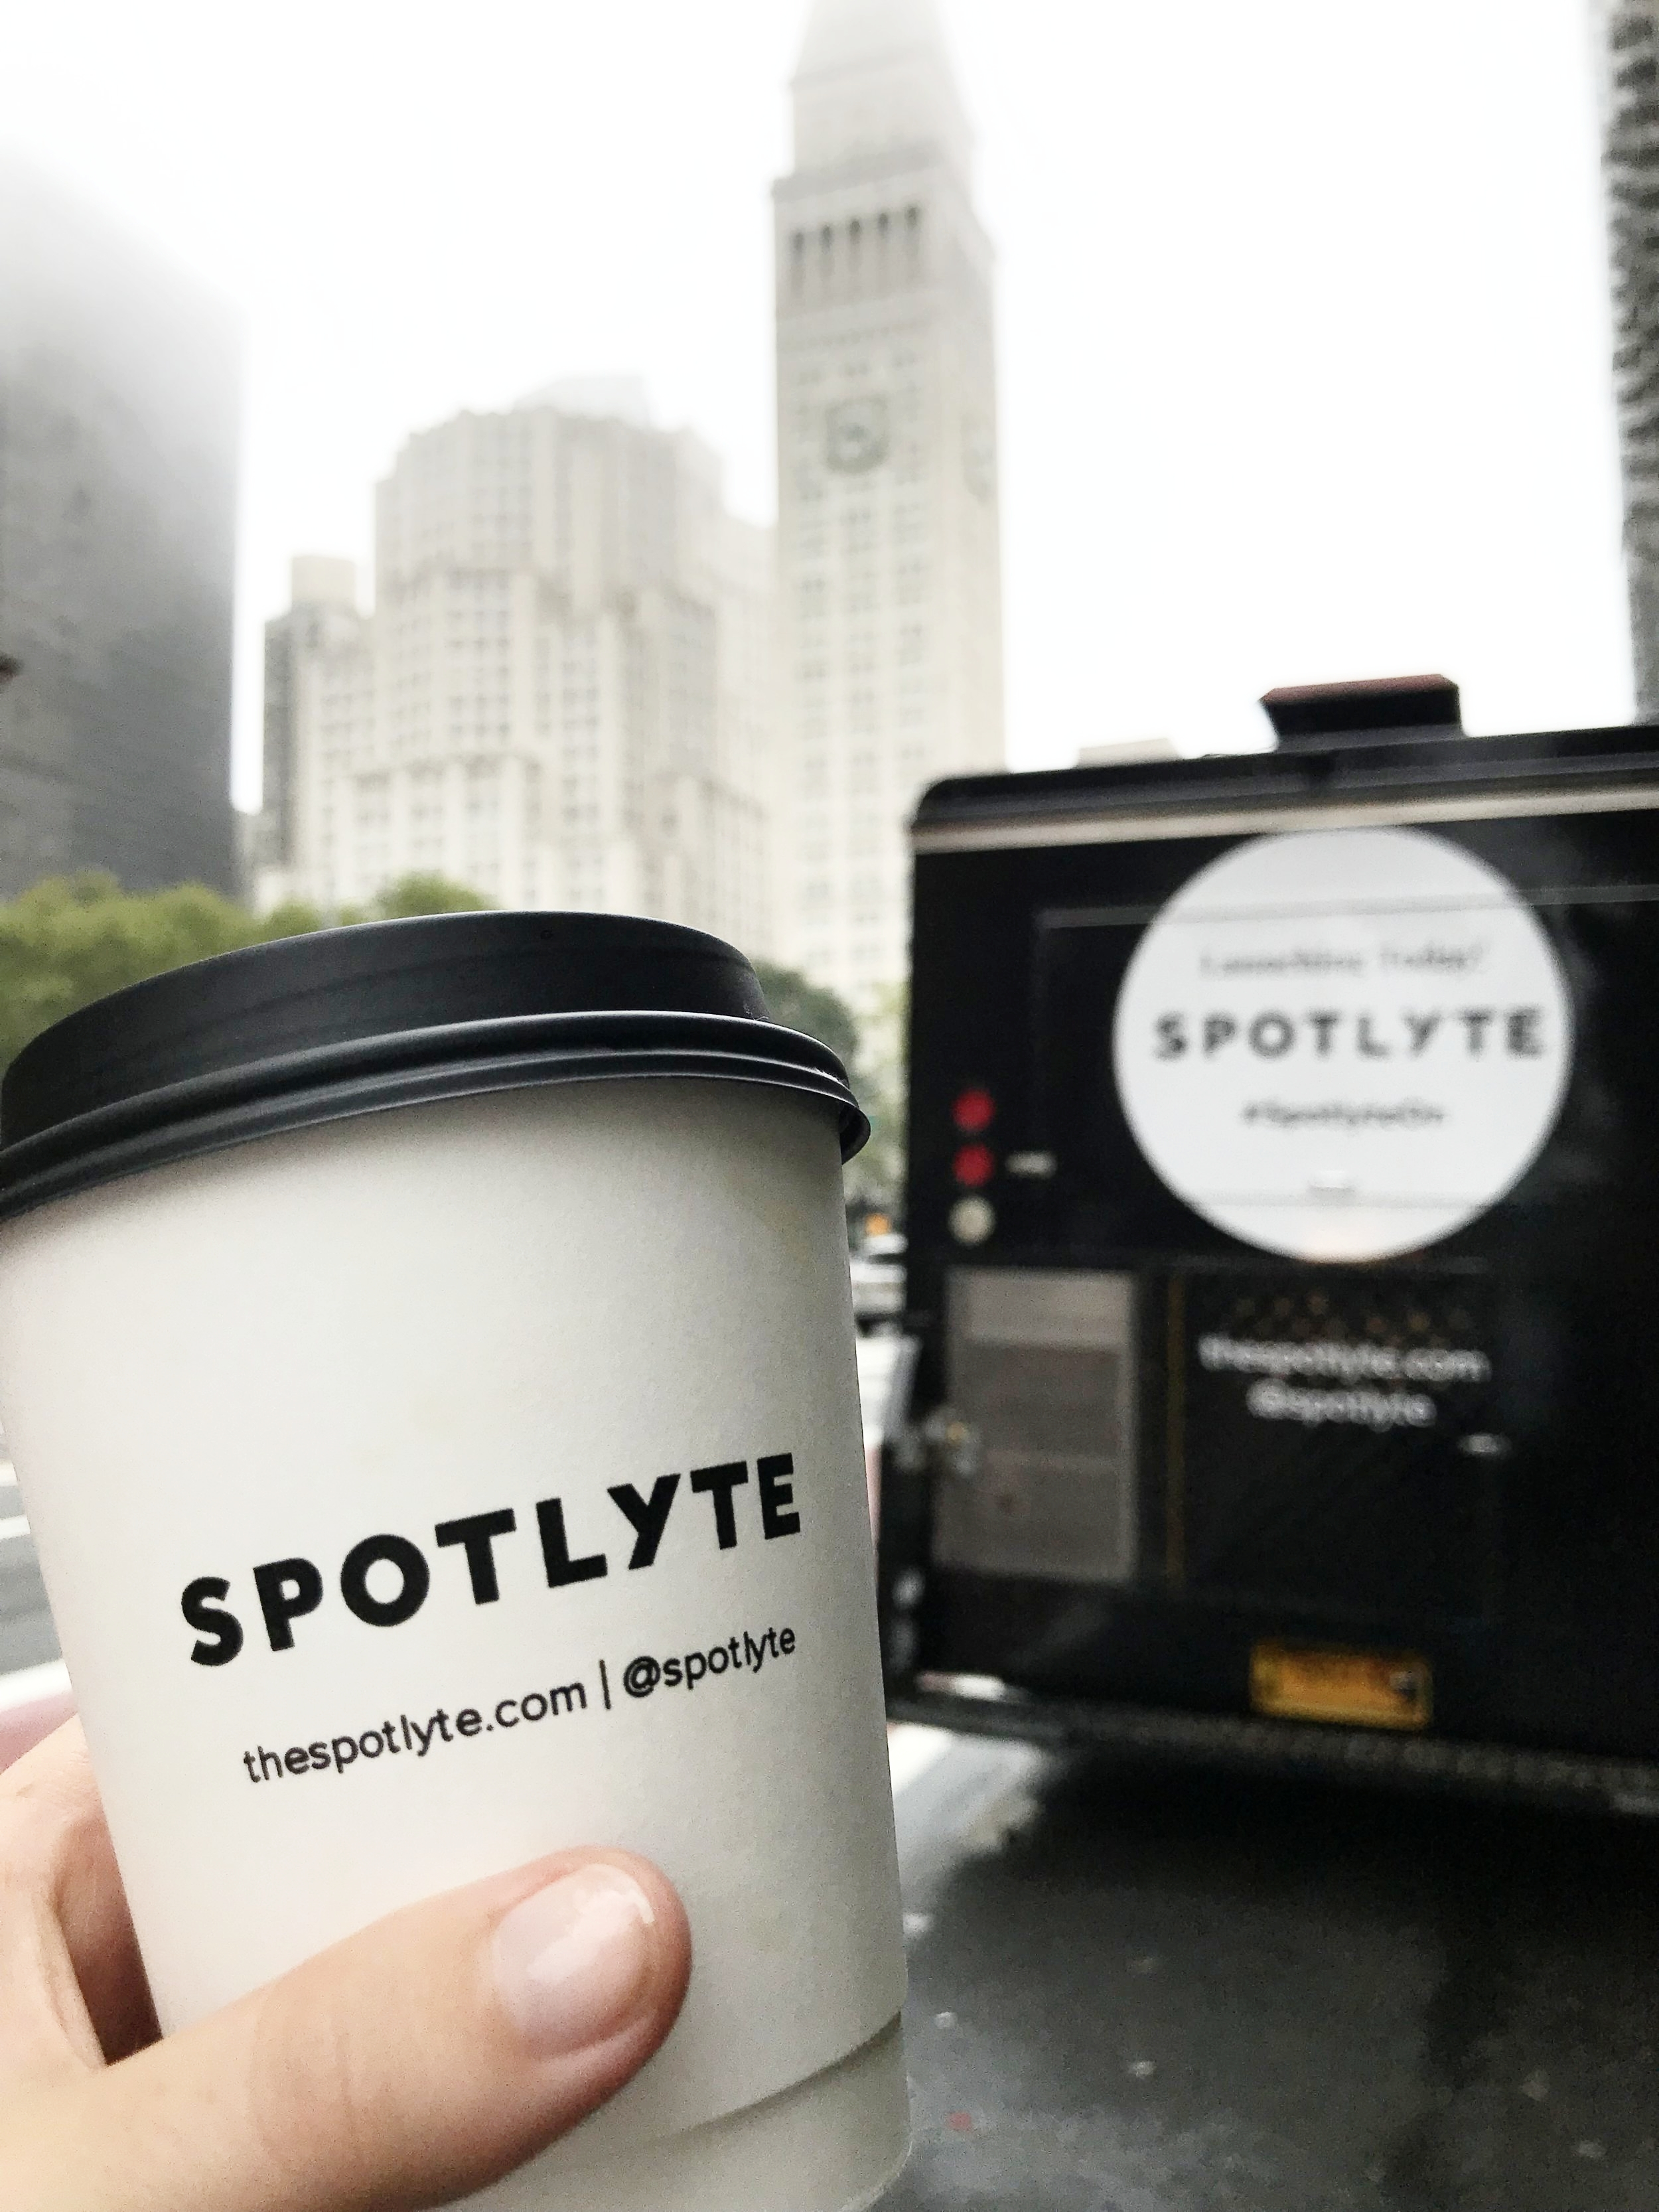 Spotlyte had custom paper coffee cups made to give out to commuters on their walk to work